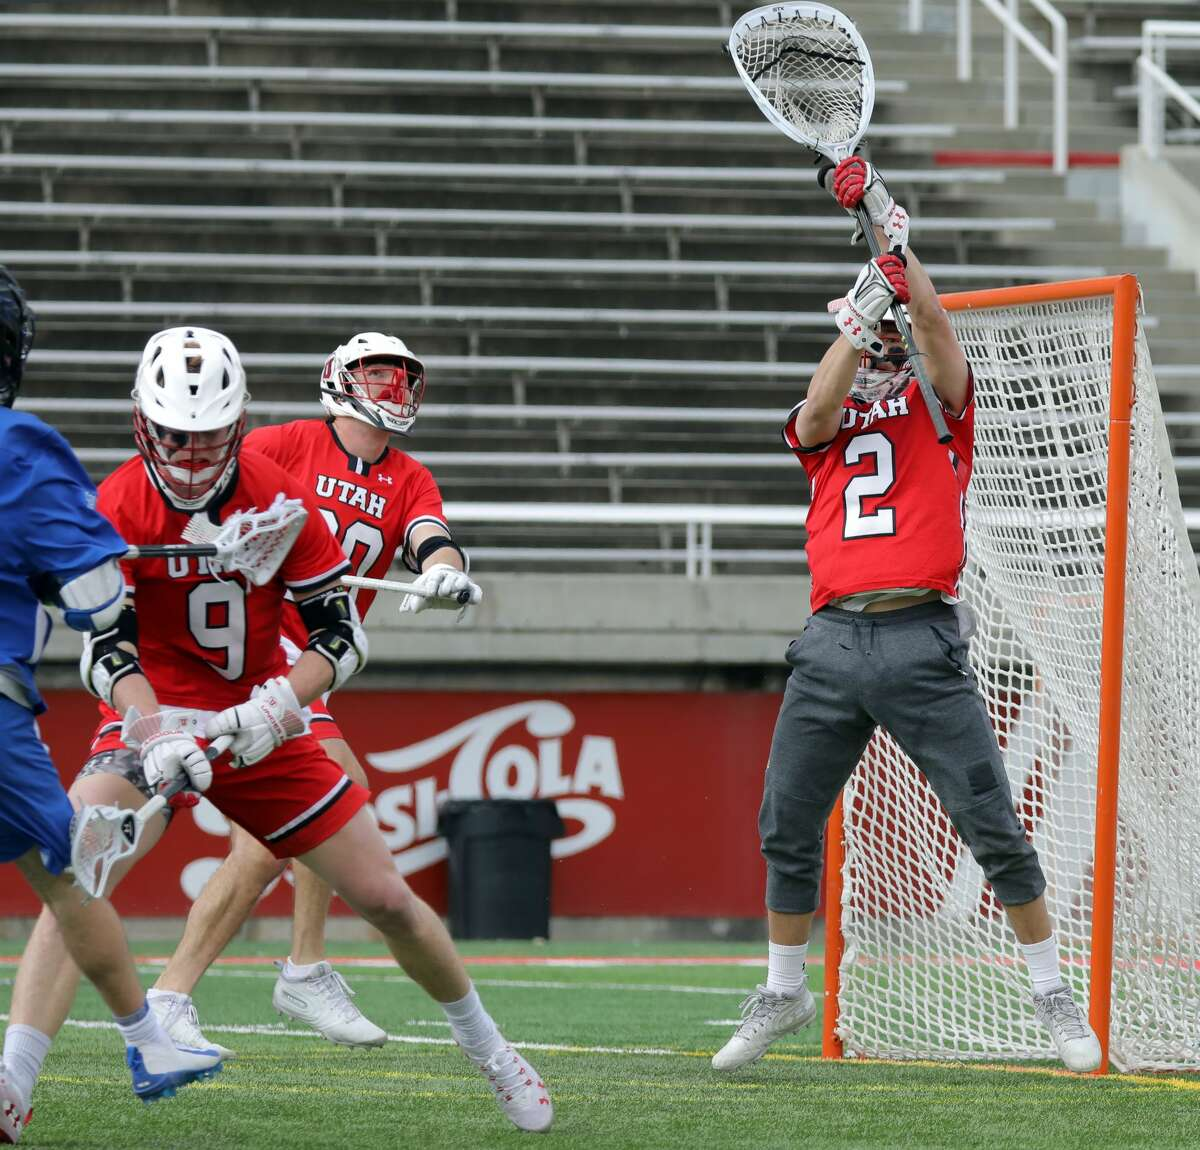 Though Utah struggled, it would have been a lot worse without goalkeeper Liam Donnelly, according to UAlbany head coach Scott Marr.(Steve C. Wilson/University of Utah)